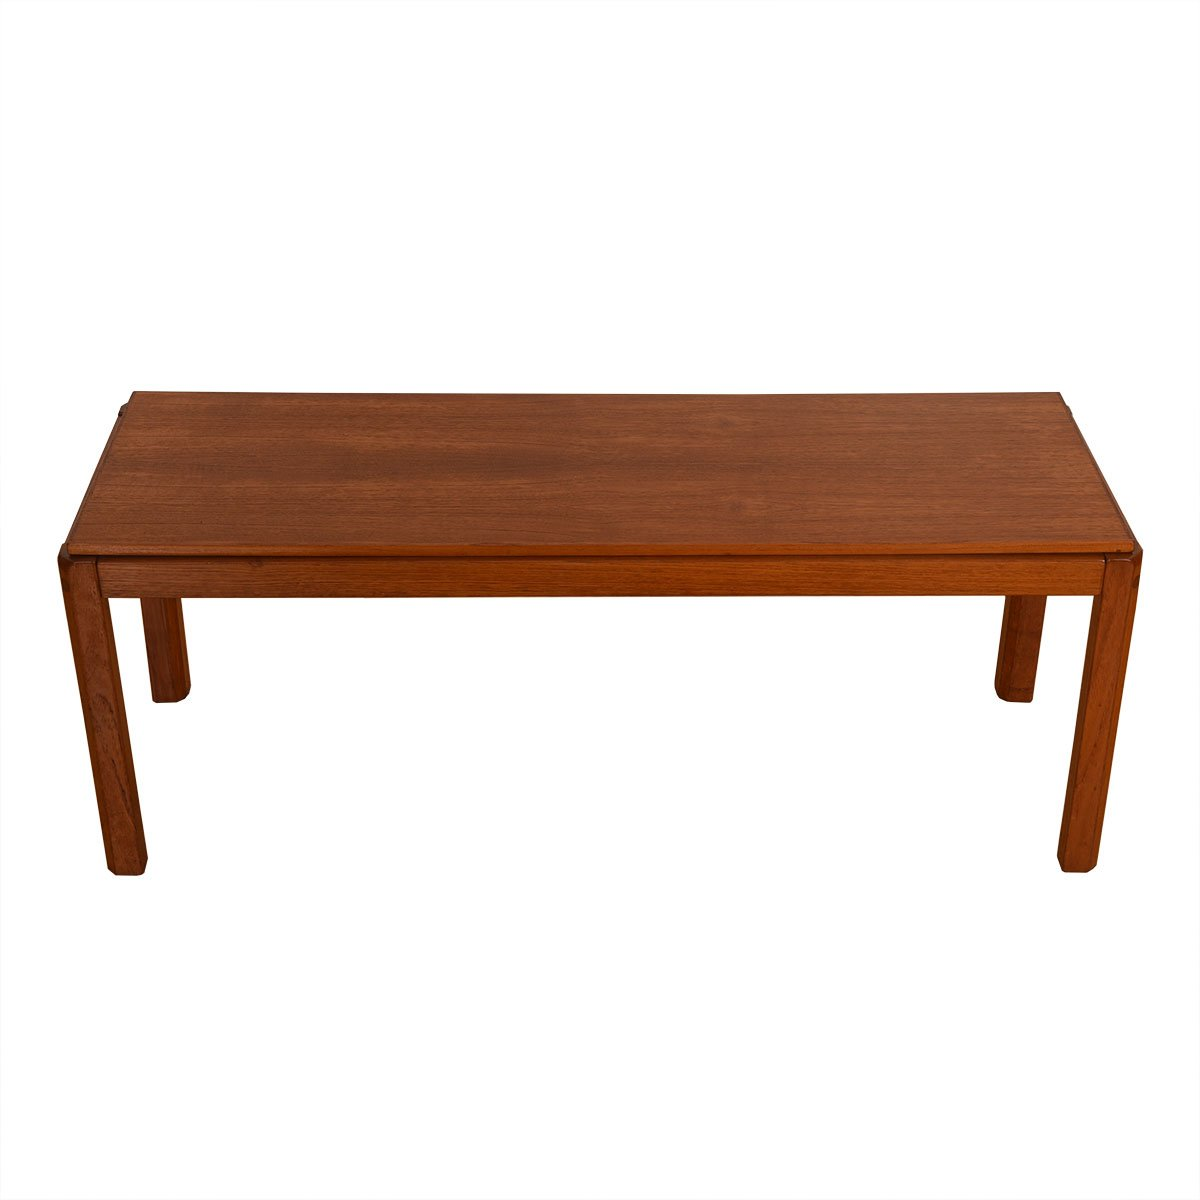 Apartment Sized Danish Teak Coffee Table w/ Beveled Legs